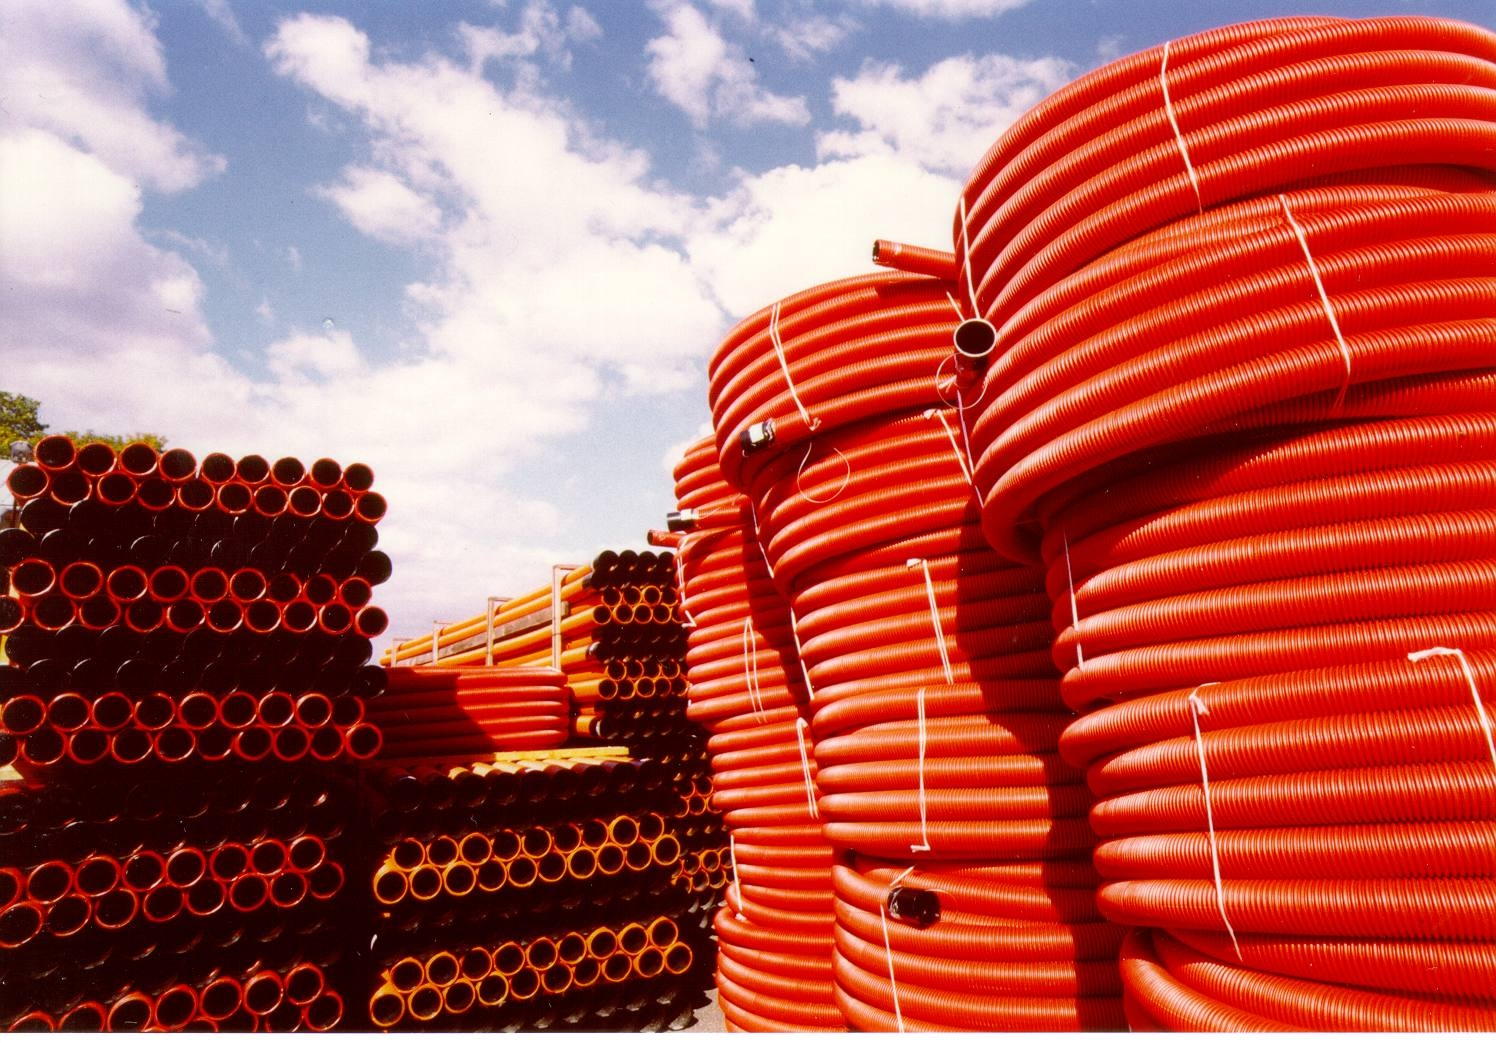 DUOFLEX, DUOHARD protective pipes